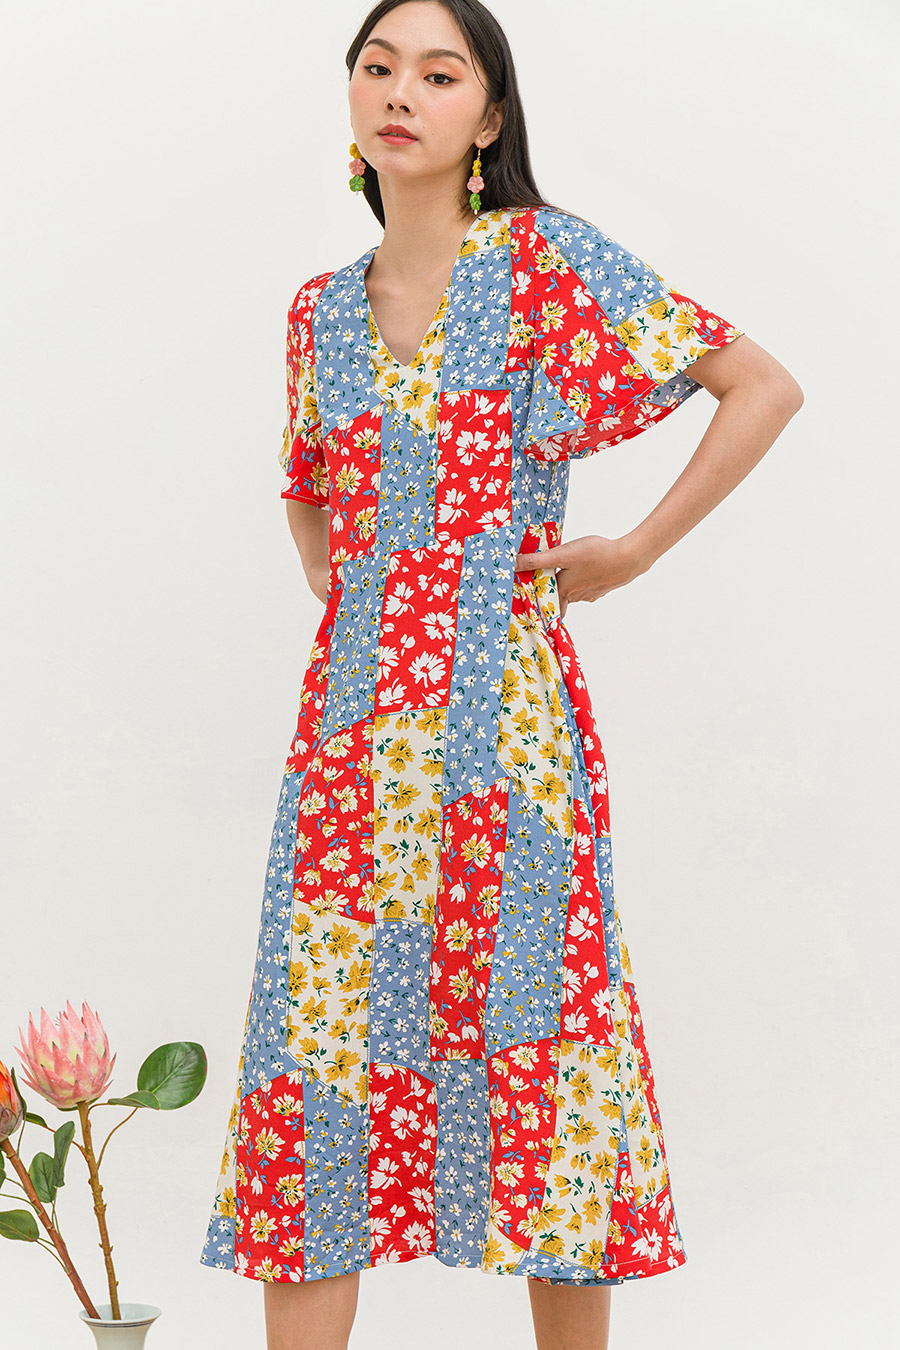 *RESTOCKED* SHANDY DRESS - PATCHWORK [BY MODPARADE]